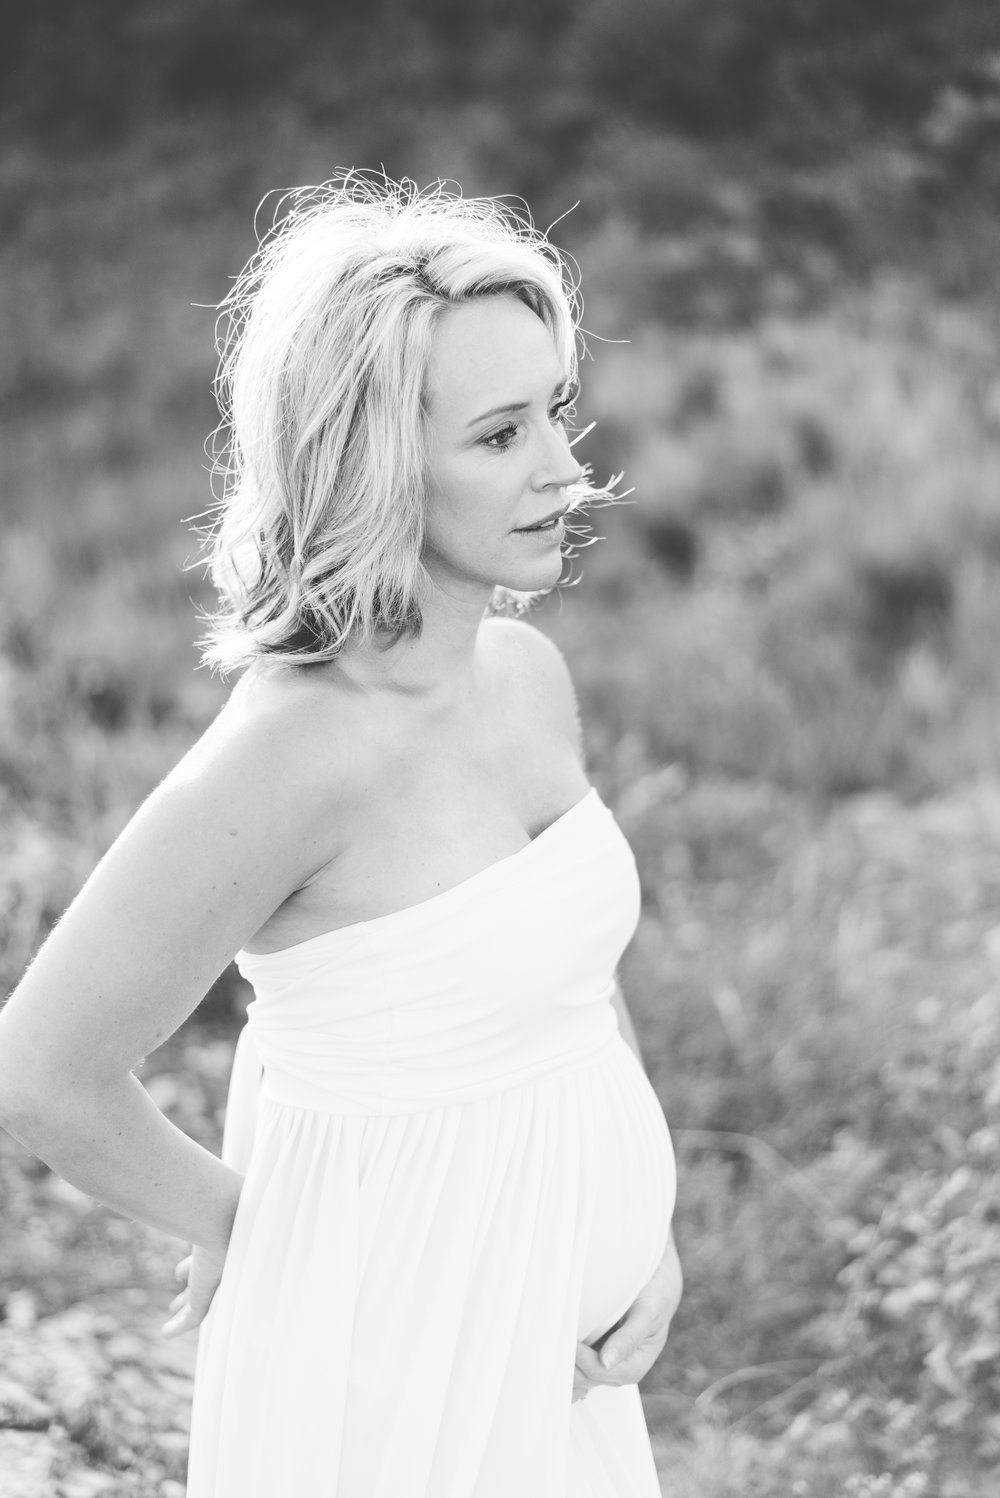 Caroline's_Maternity_Photos83459.jpg